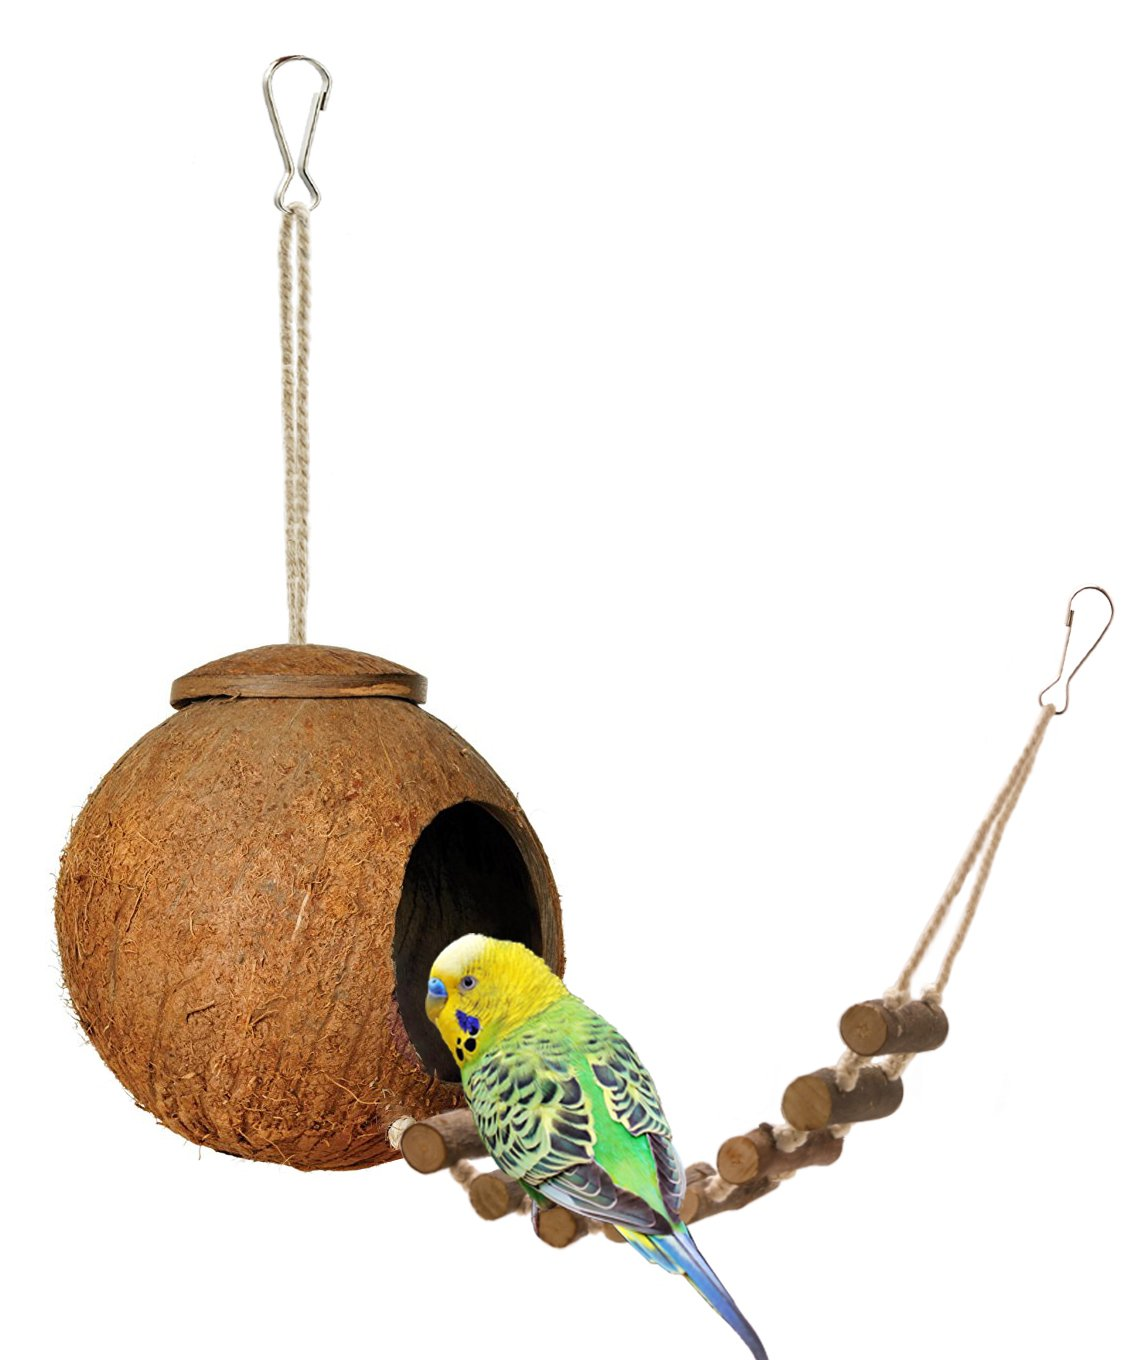 Niteangel 100% Natural Coconut Hideaway with Ladder, Bird and Small Animal Toy